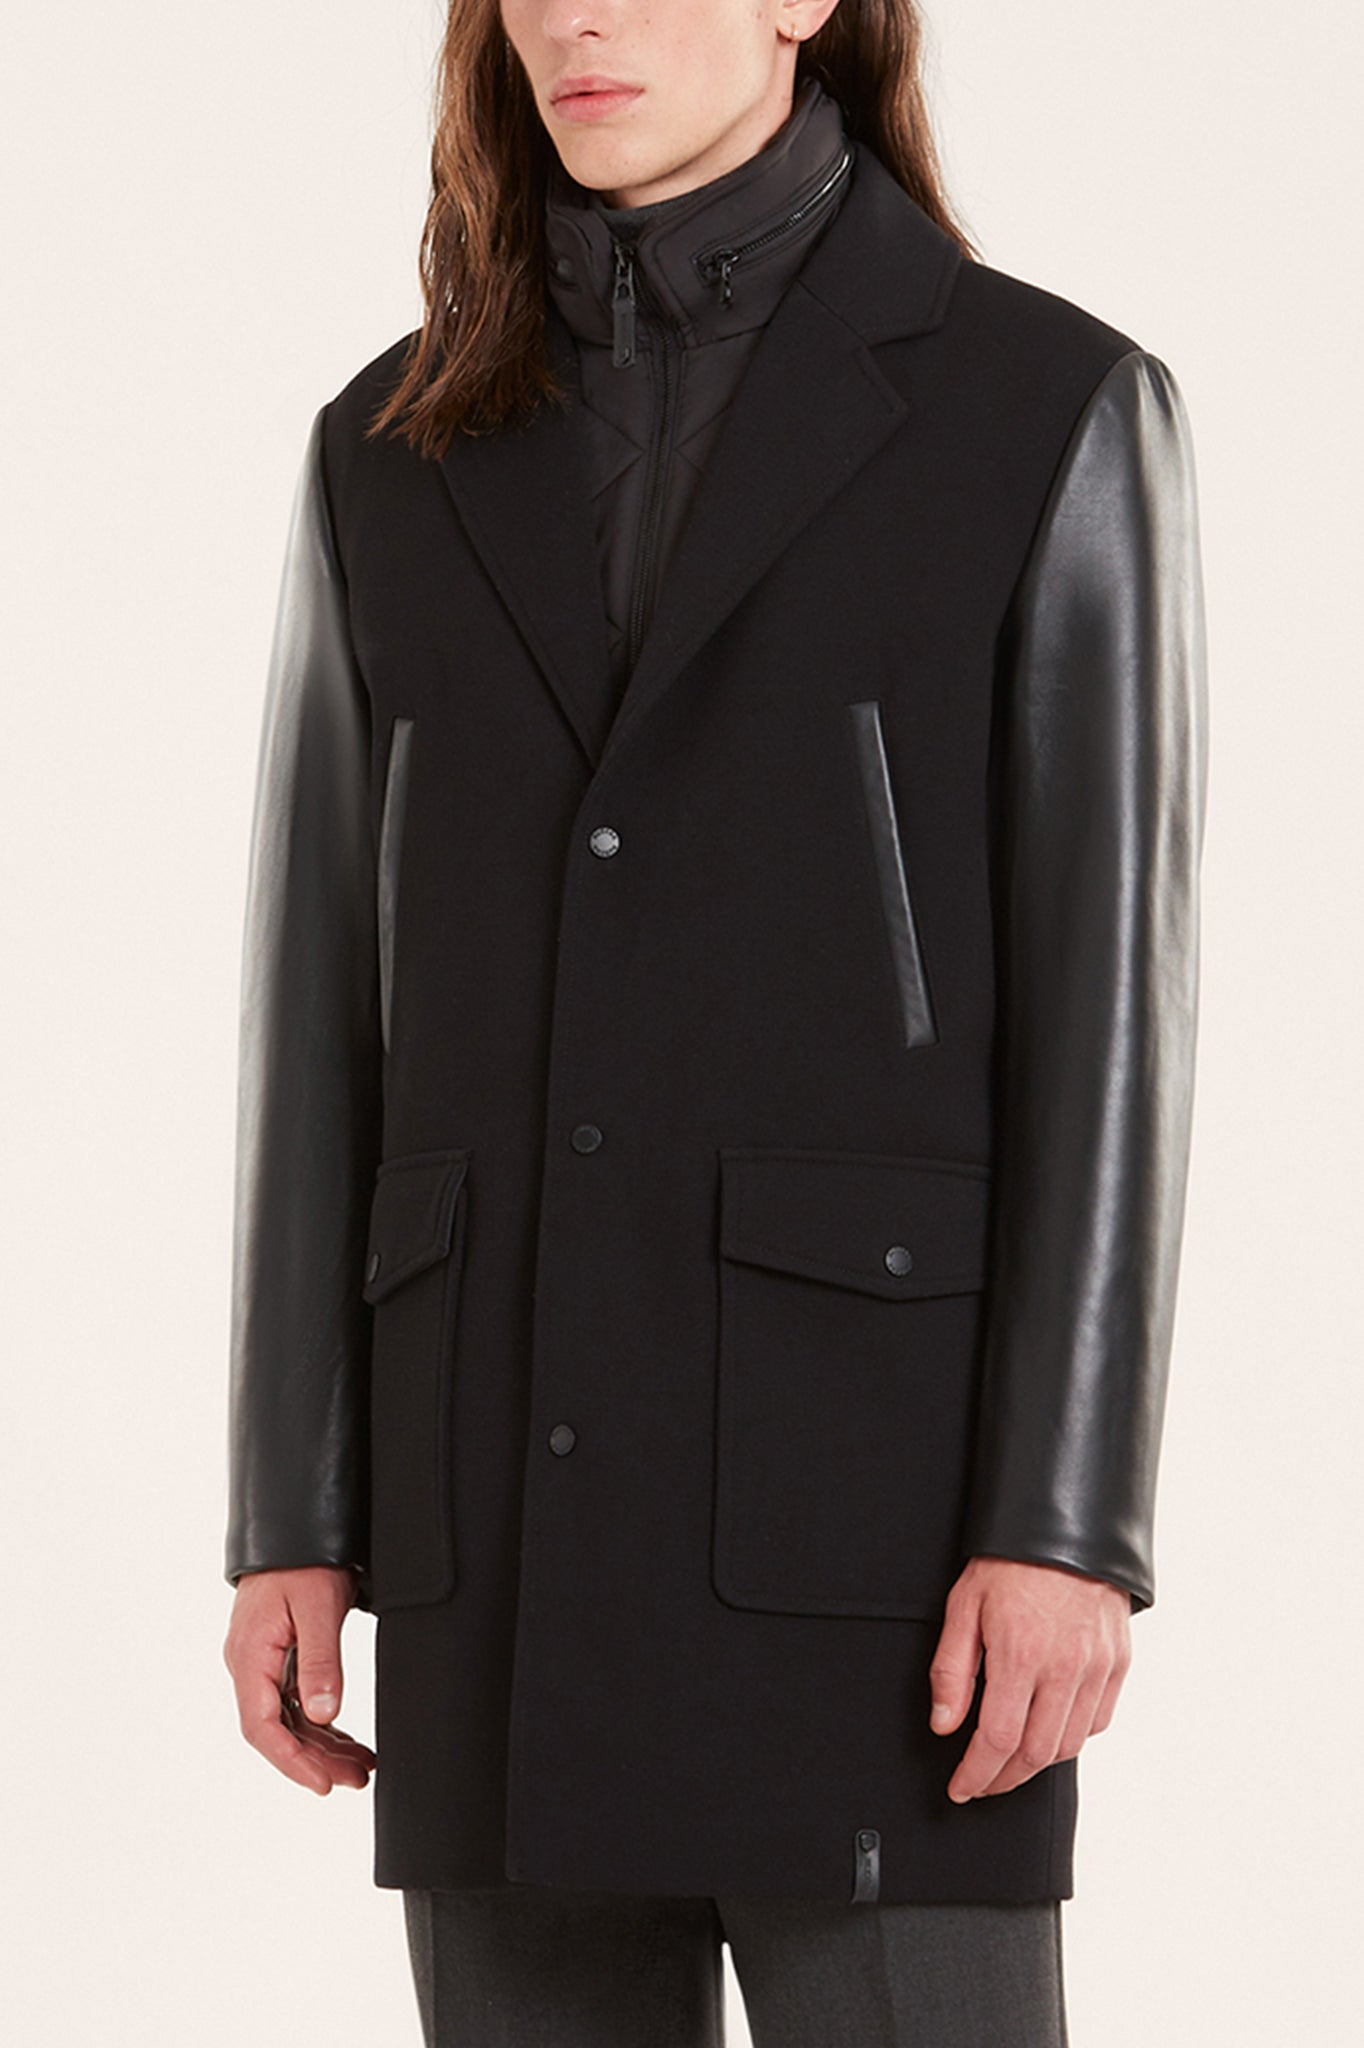 Rudsak Black Overcoat with Leather Sleeves